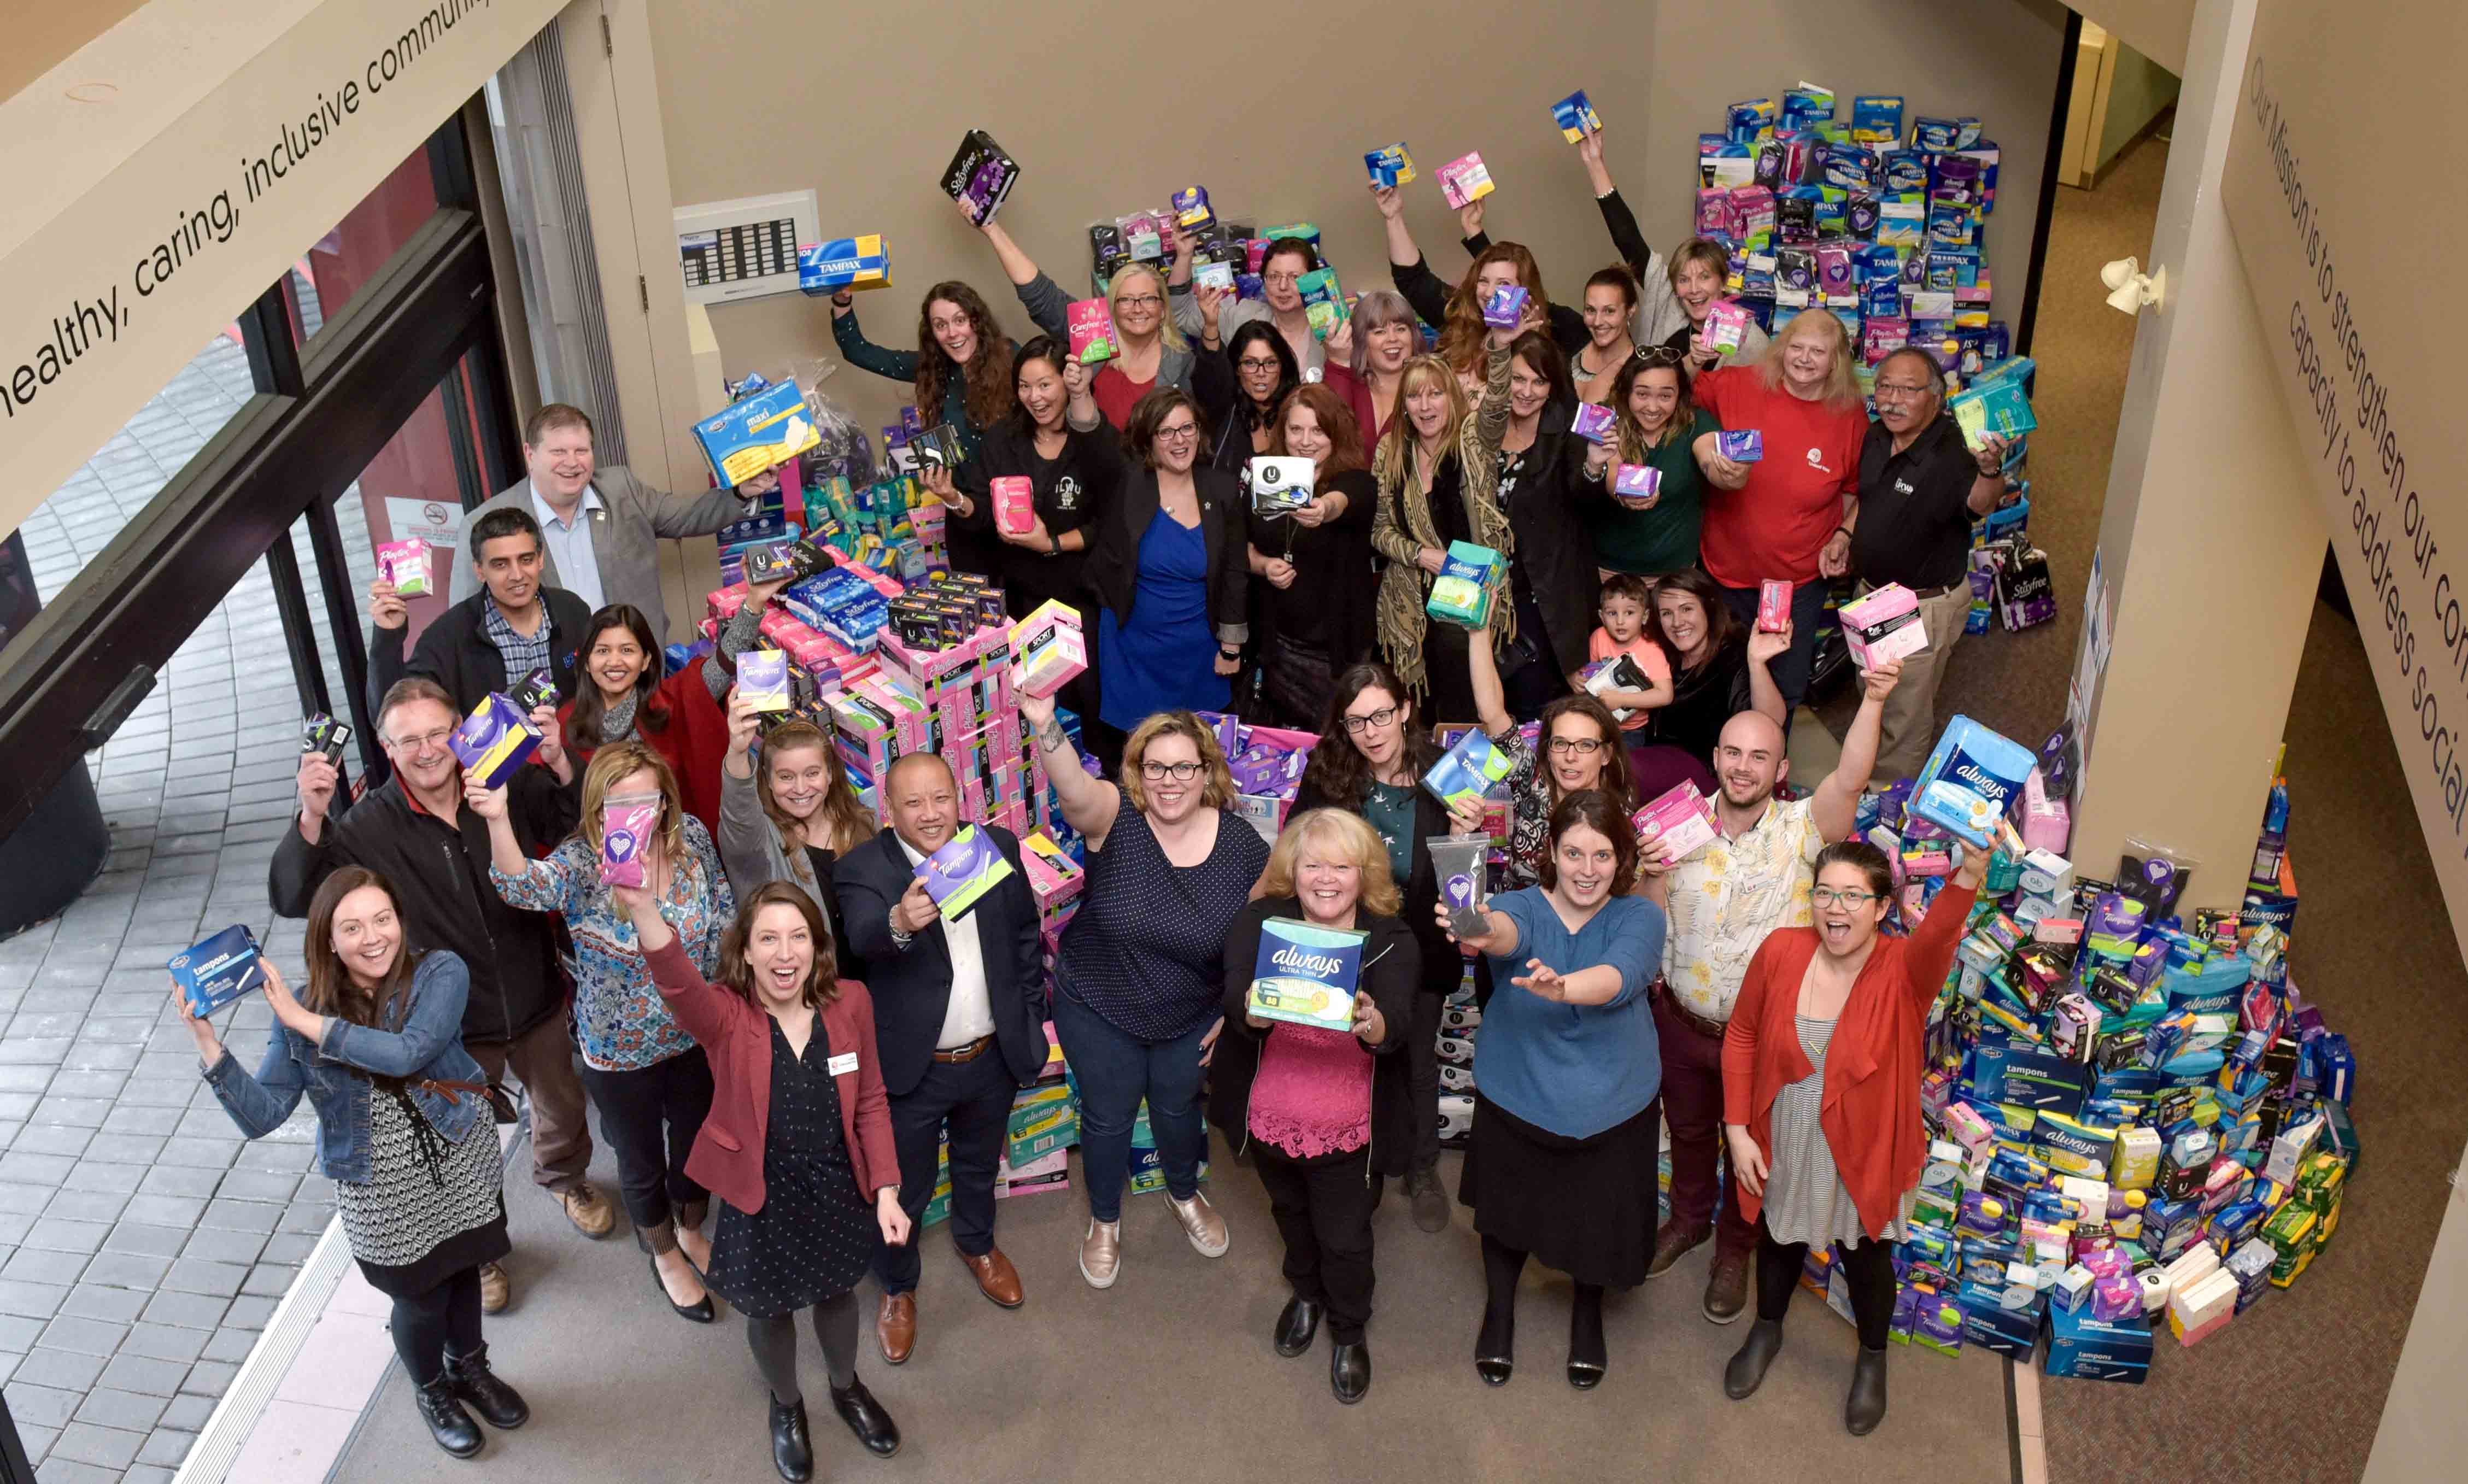 tampon tuesday united way lower mainland